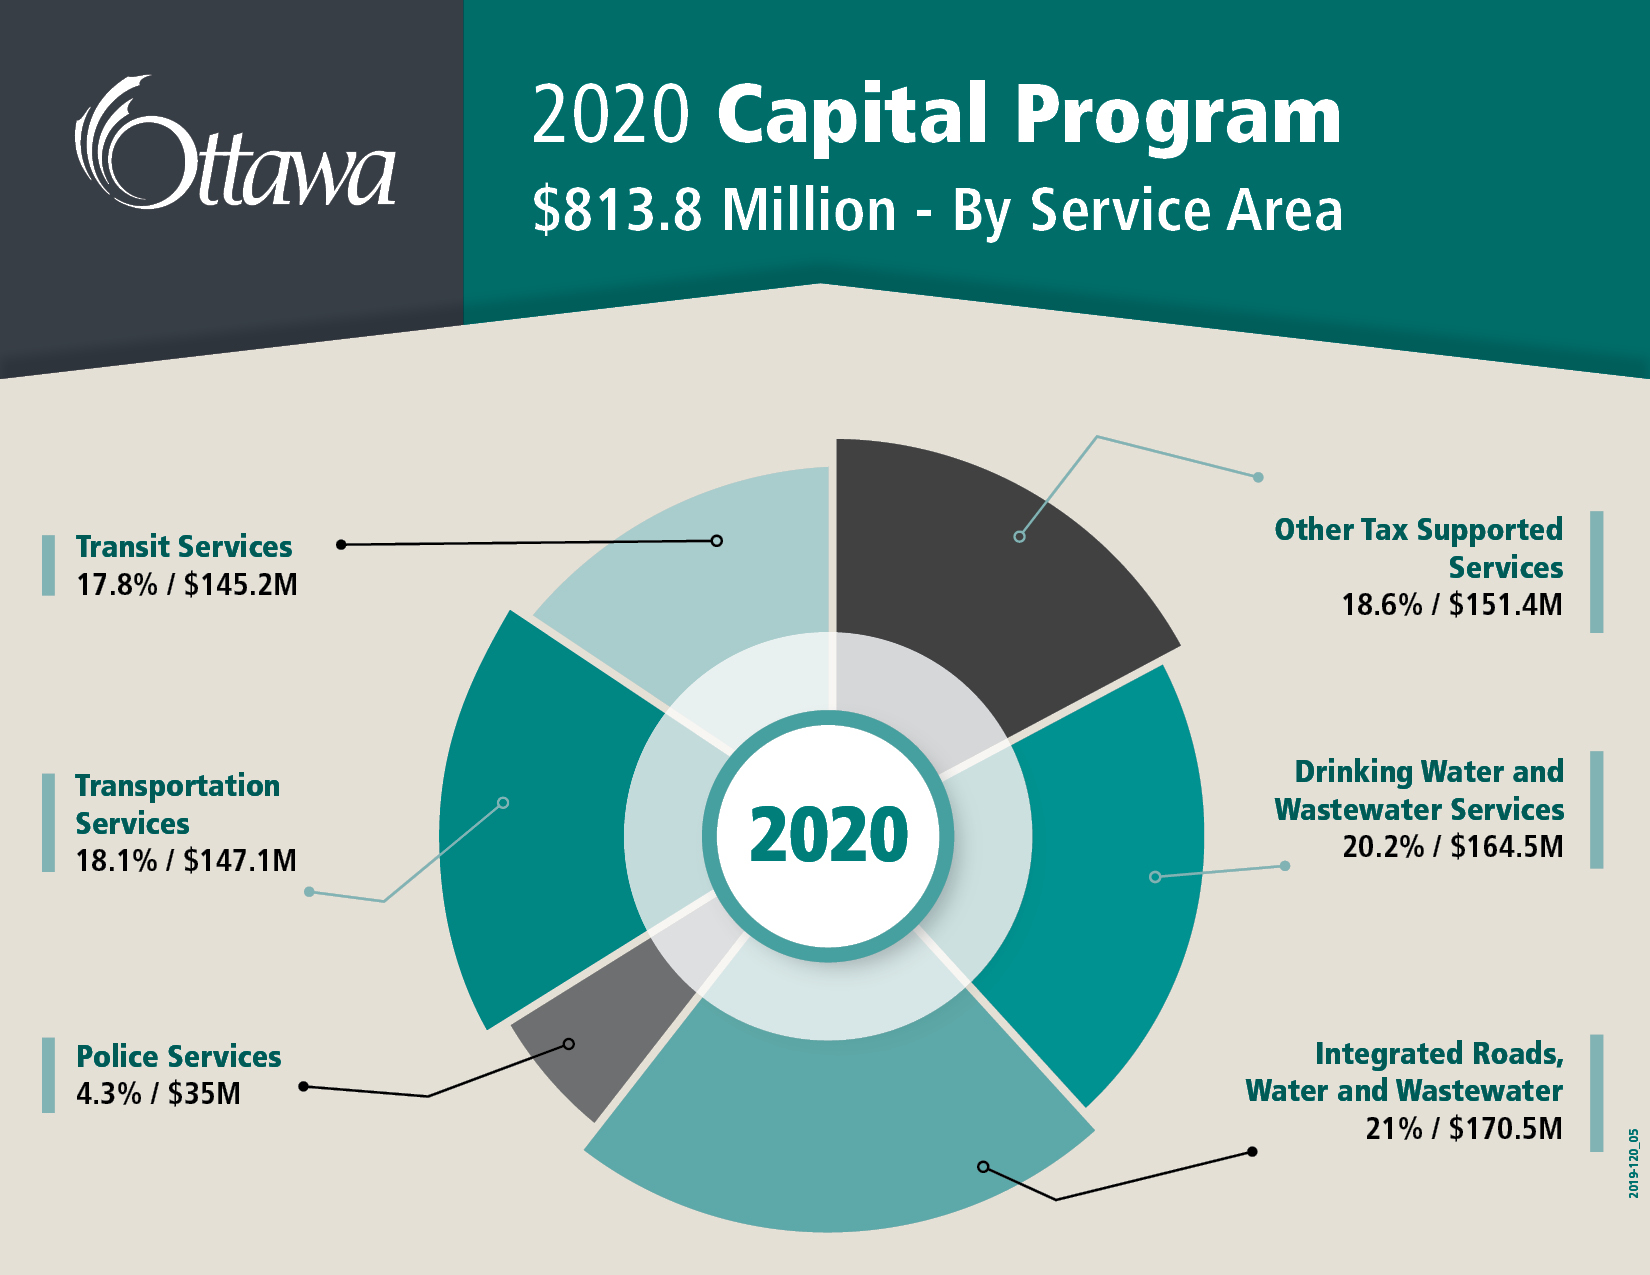 2020 Capital Program $813.8 million - By Service Area